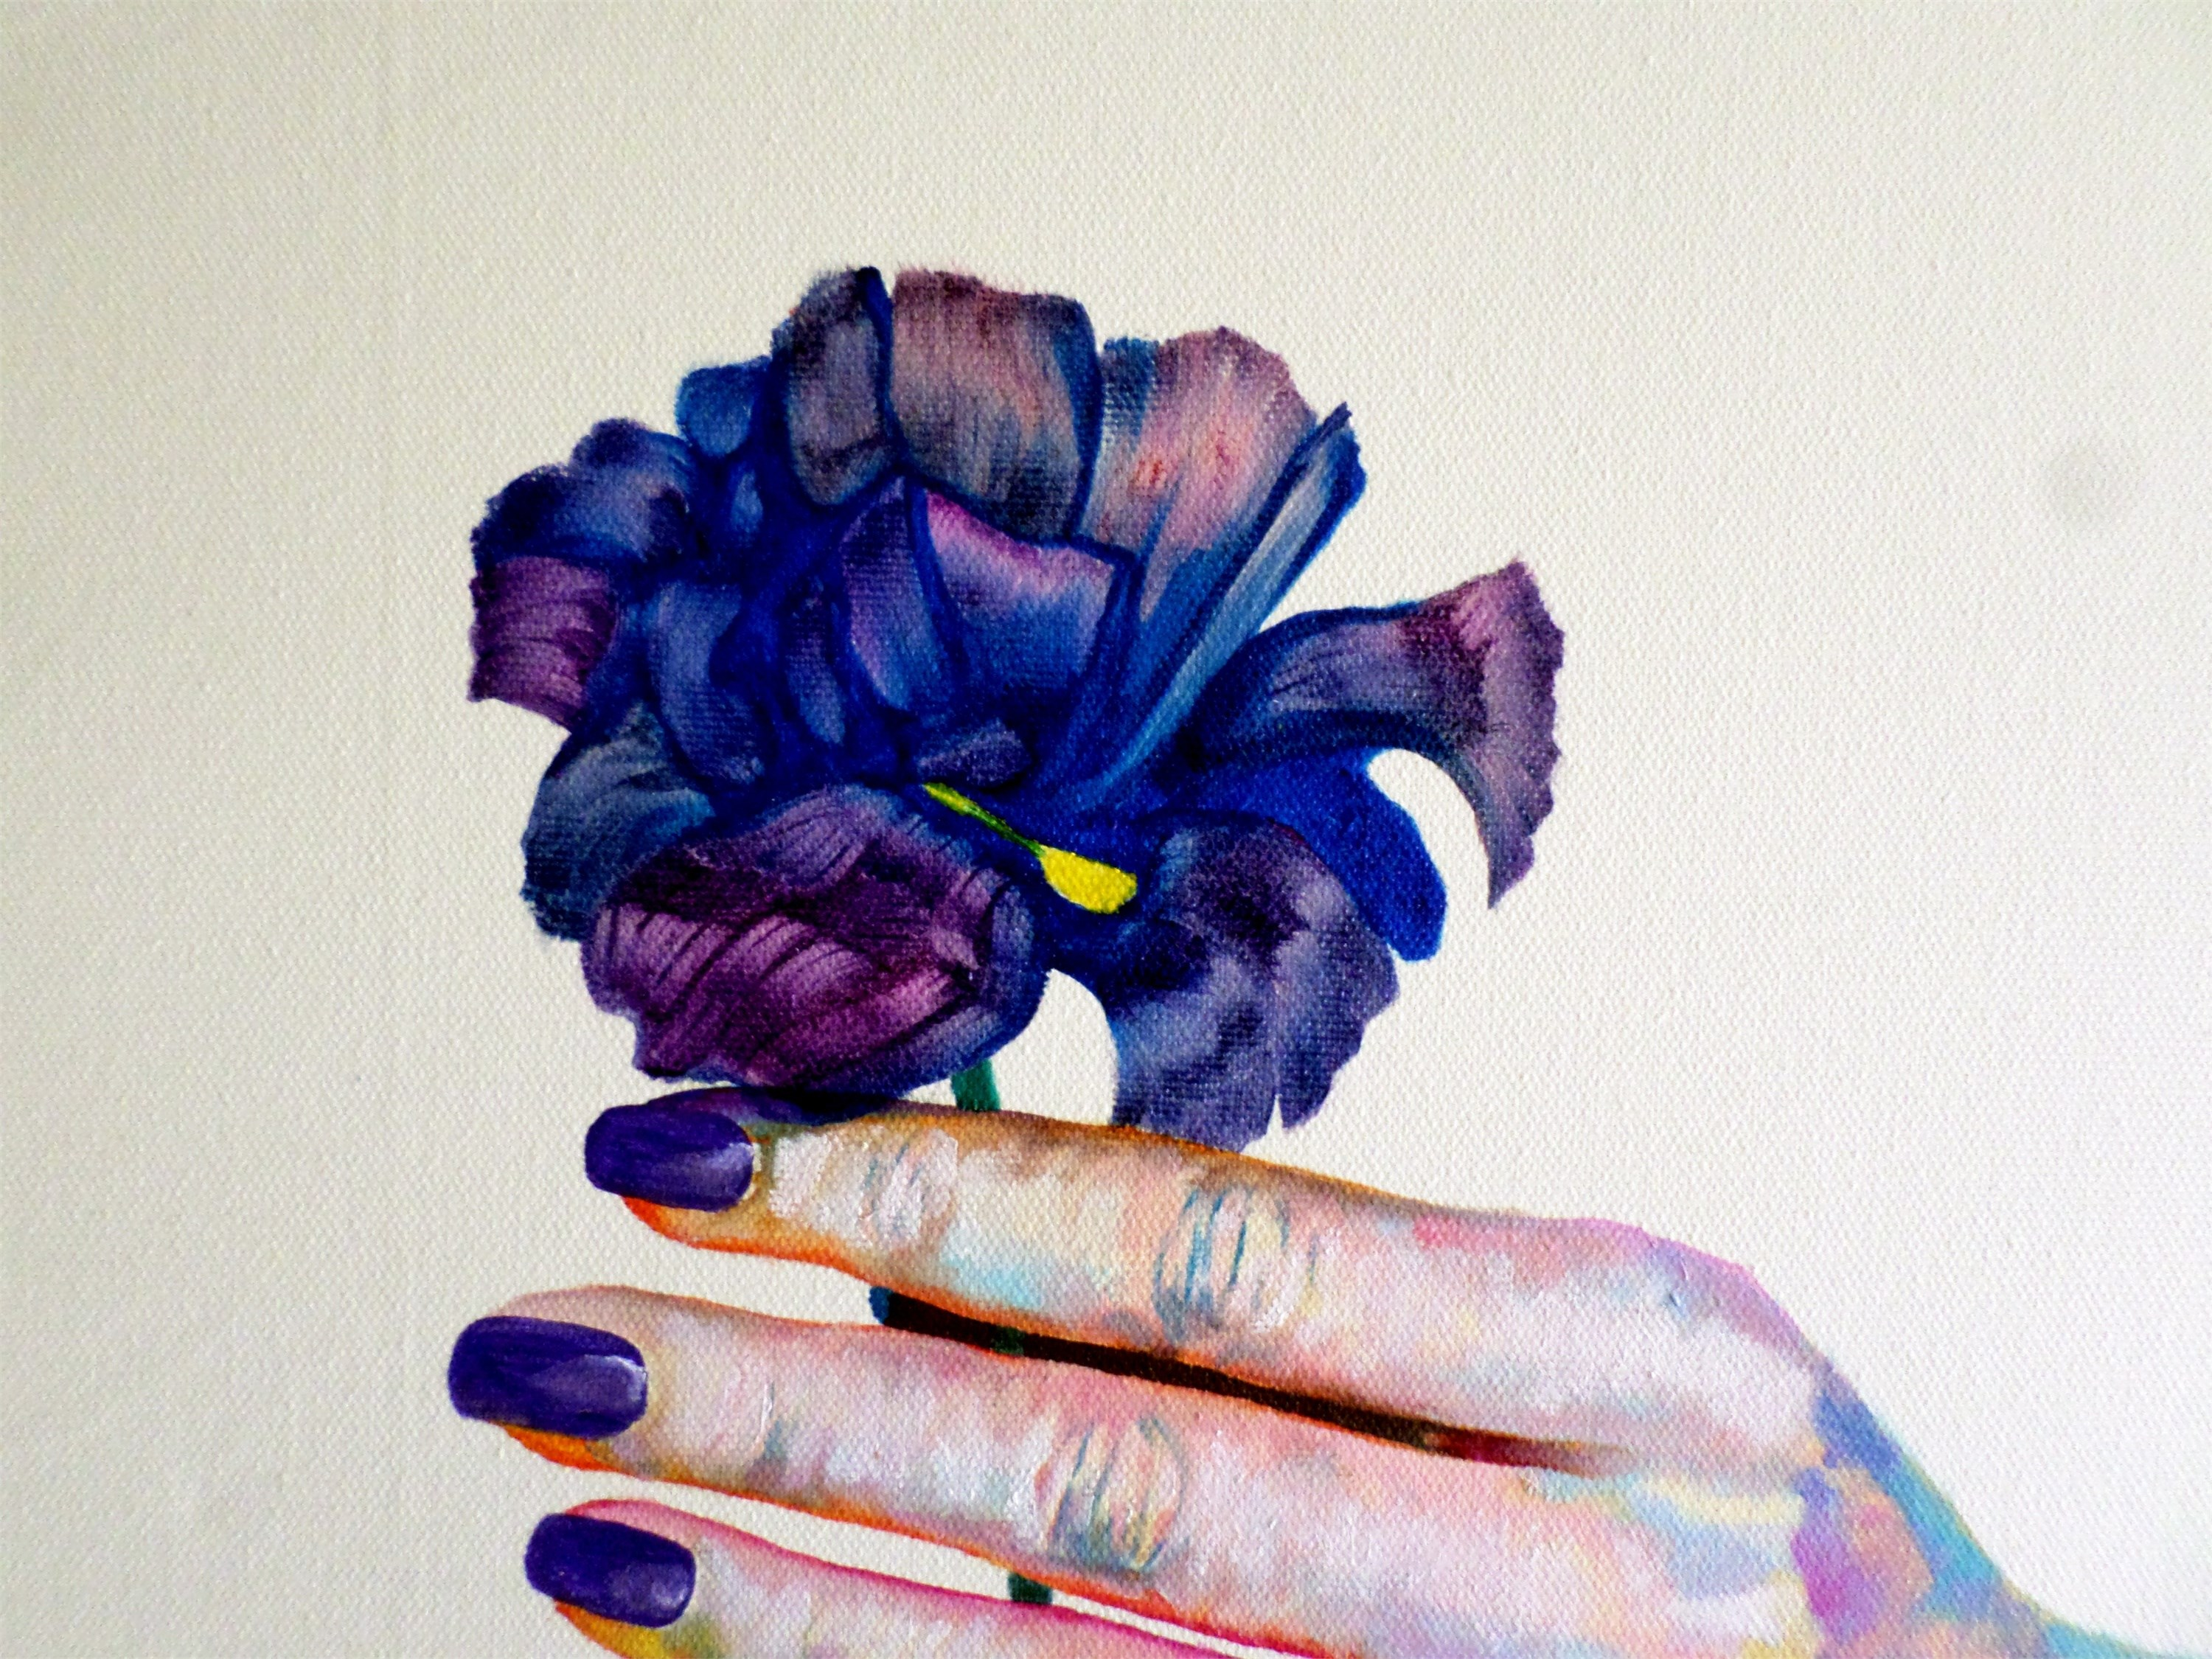 The colored flower, original Body Canvas Painting by Julian Arsenie